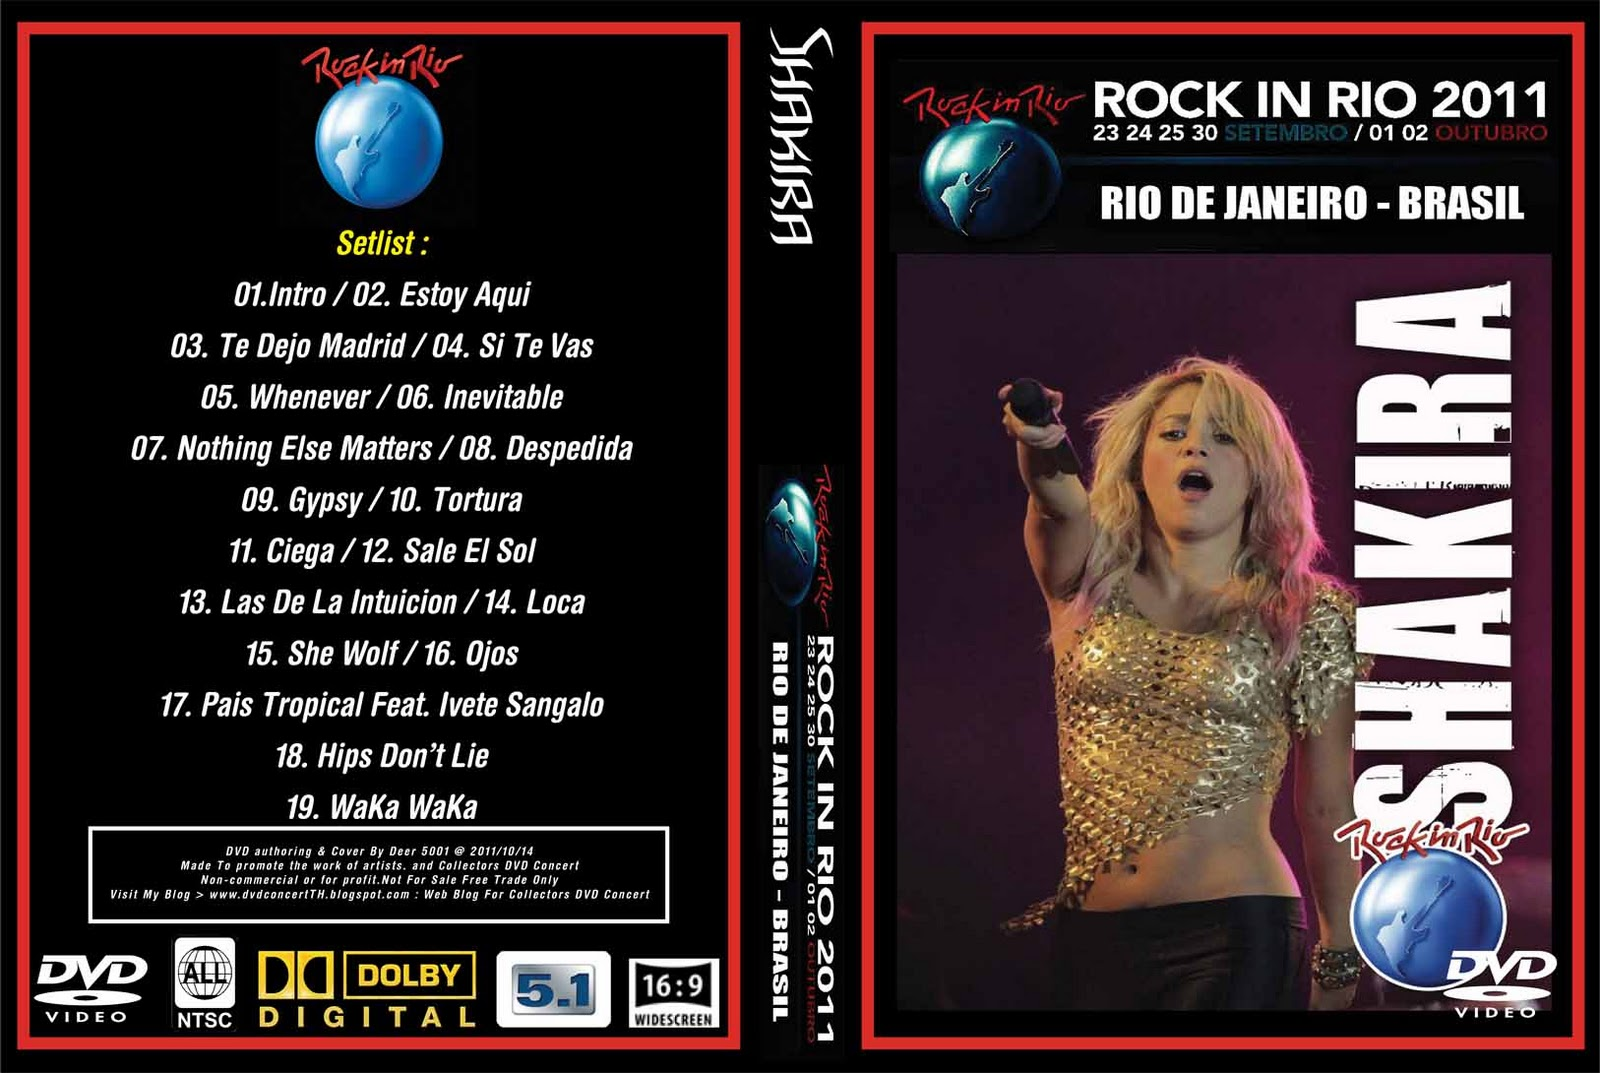 http://2.bp.blogspot.com/-Qrwlvq5ZSgk/TpgniMY2bYI/AAAAAAAAEBc/NVRiLpYiTpw/s1600/DVD+Cover+Low+Quality+-+Shakira+-2011-09-30+Rock+in+Rio.jpg